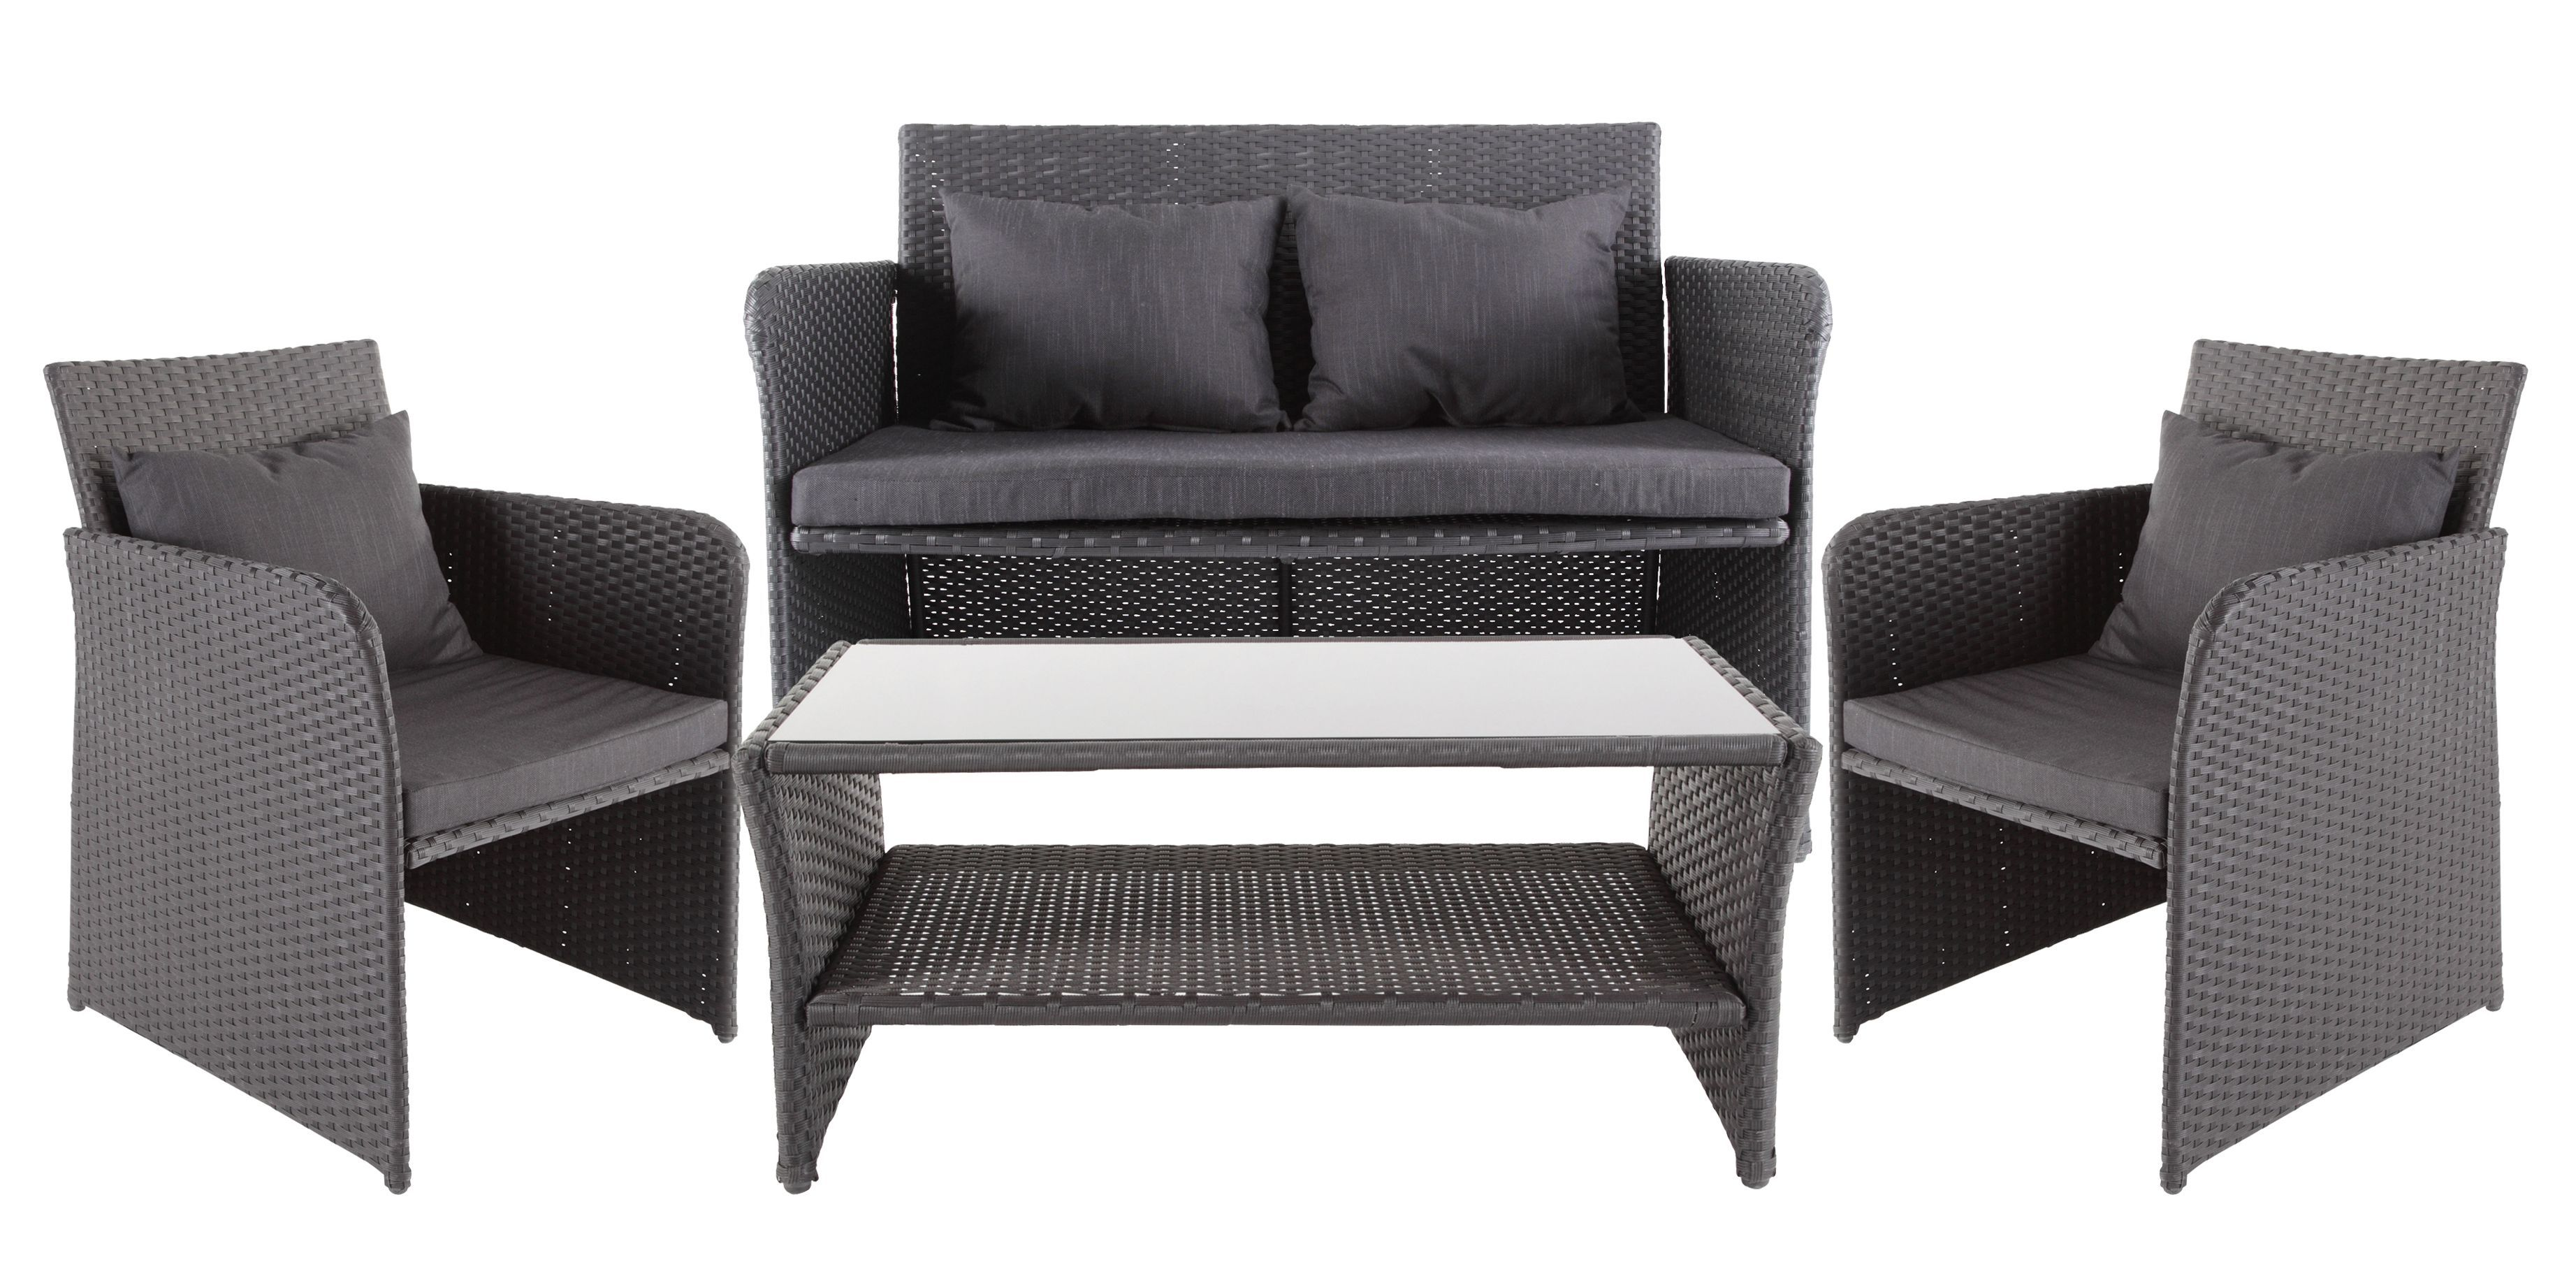 Garden Furniture B And Q morley rattan effect 4 seater coffee set | departments | diy at b&q